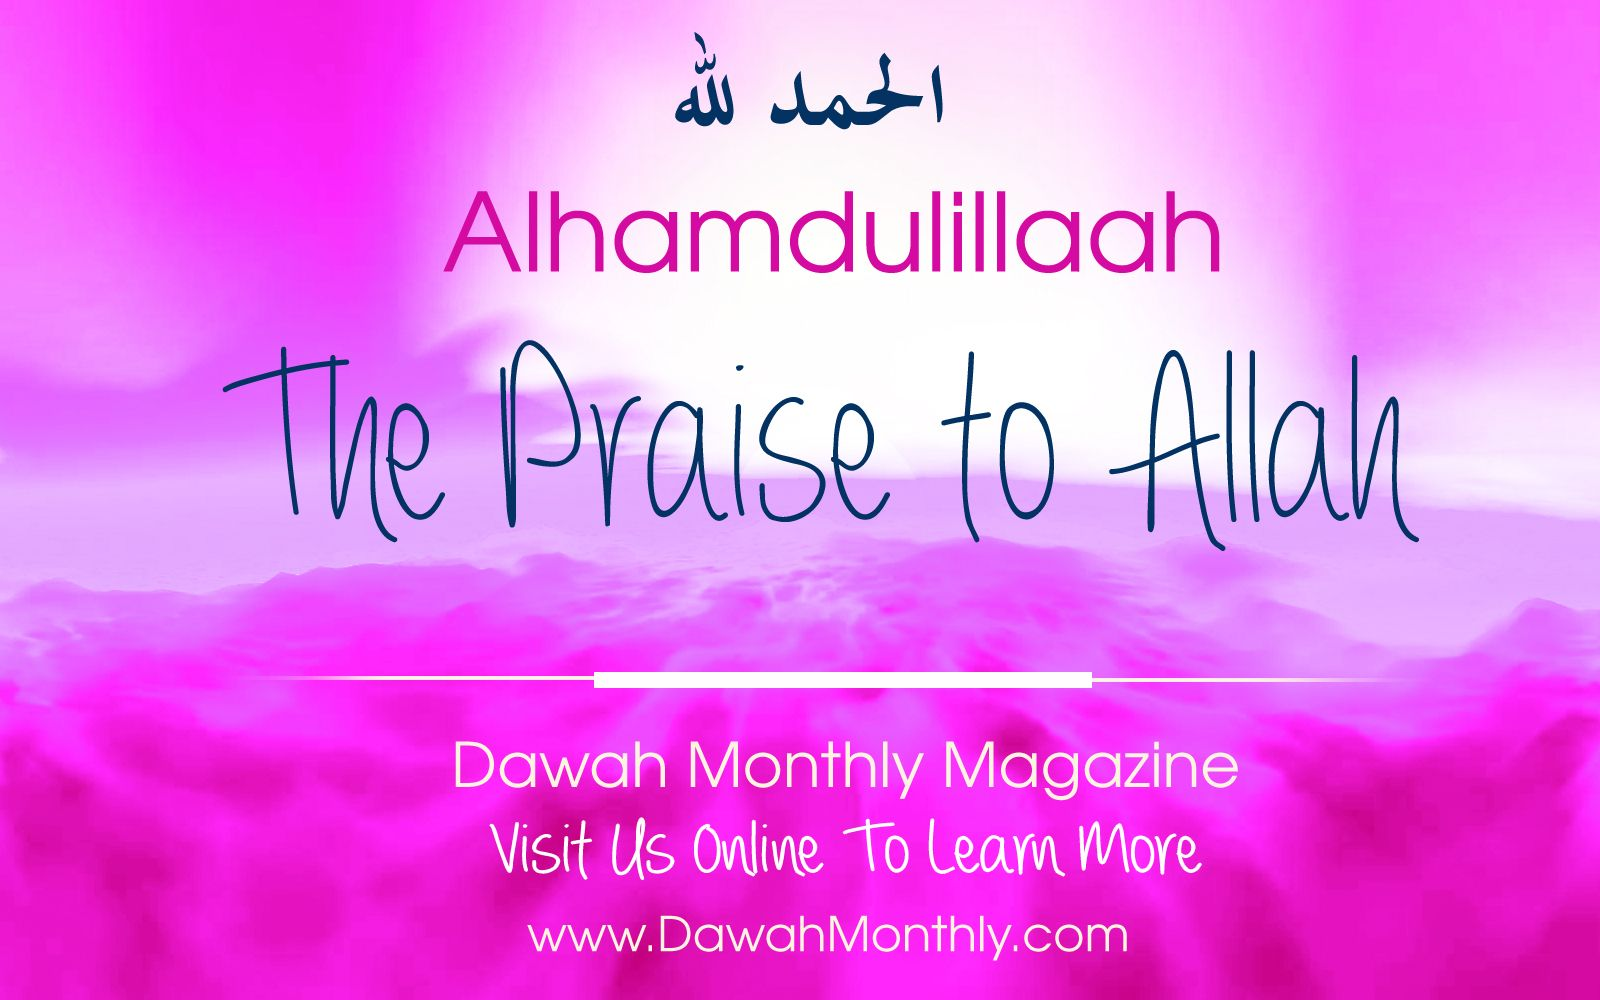 Alhamdulillah - All Praises and Thanks to Allah